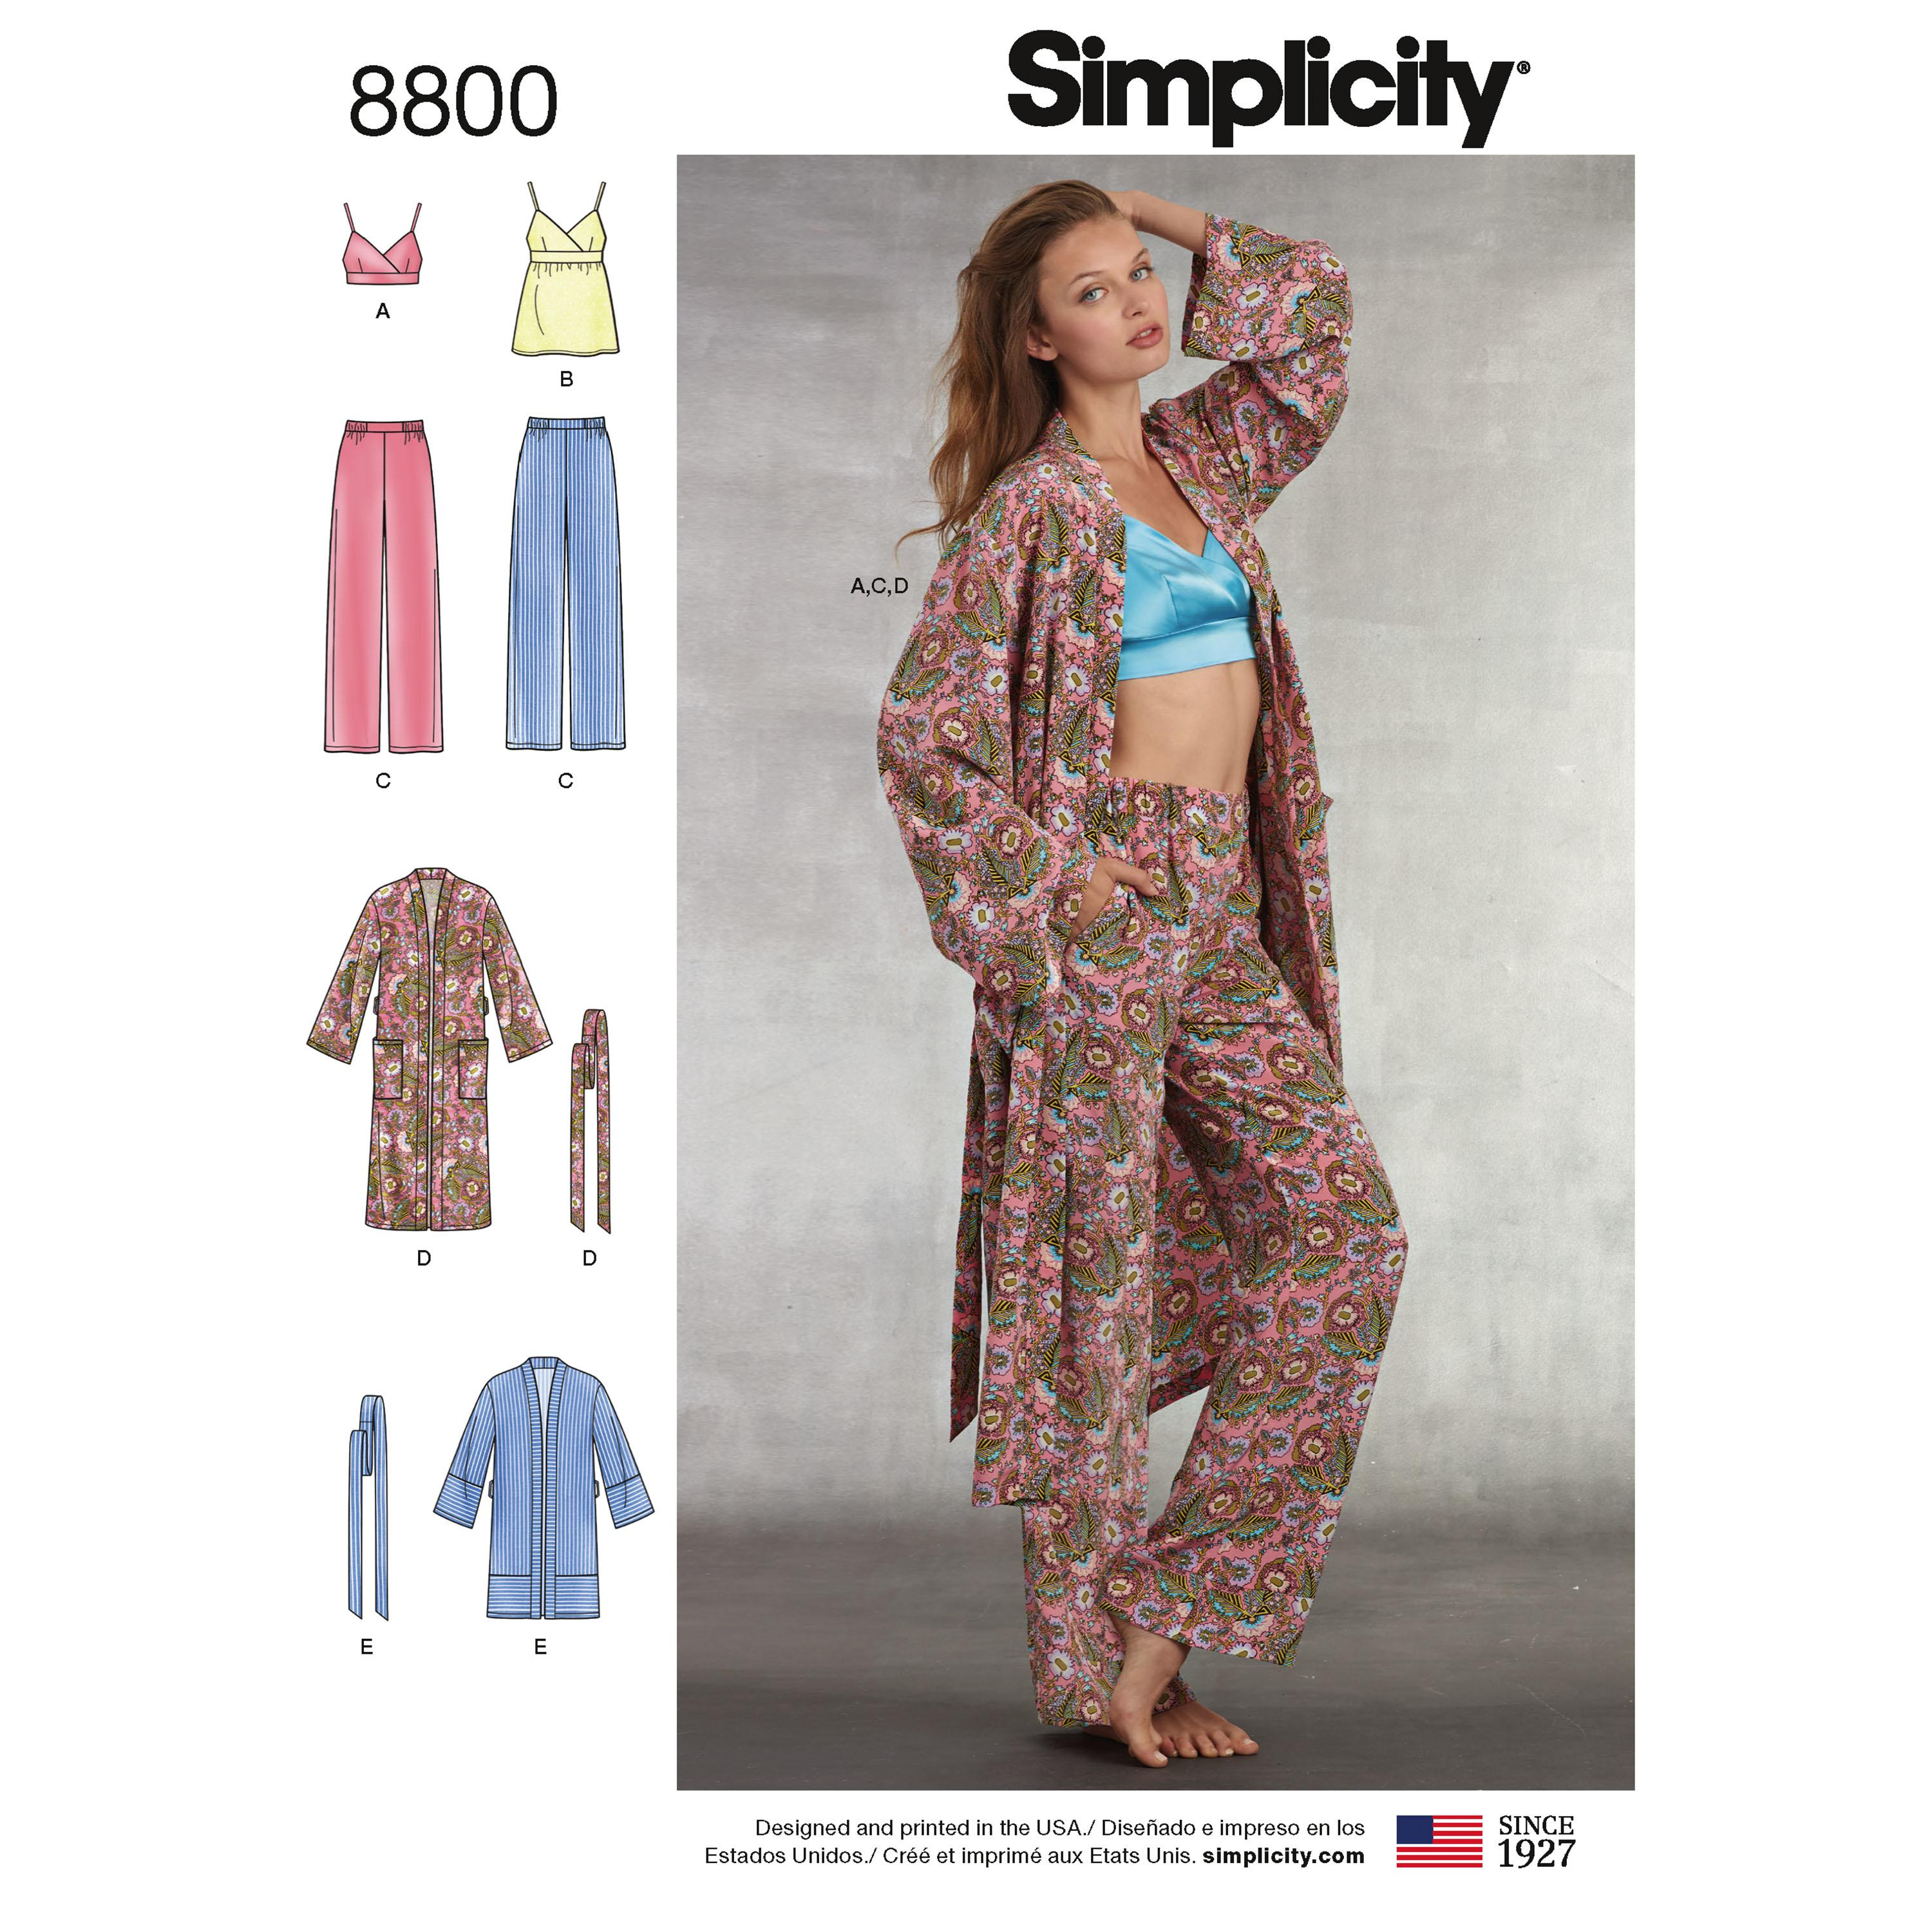 Simplicity S8800 Misses' Robe, Pants, Top and Bralette